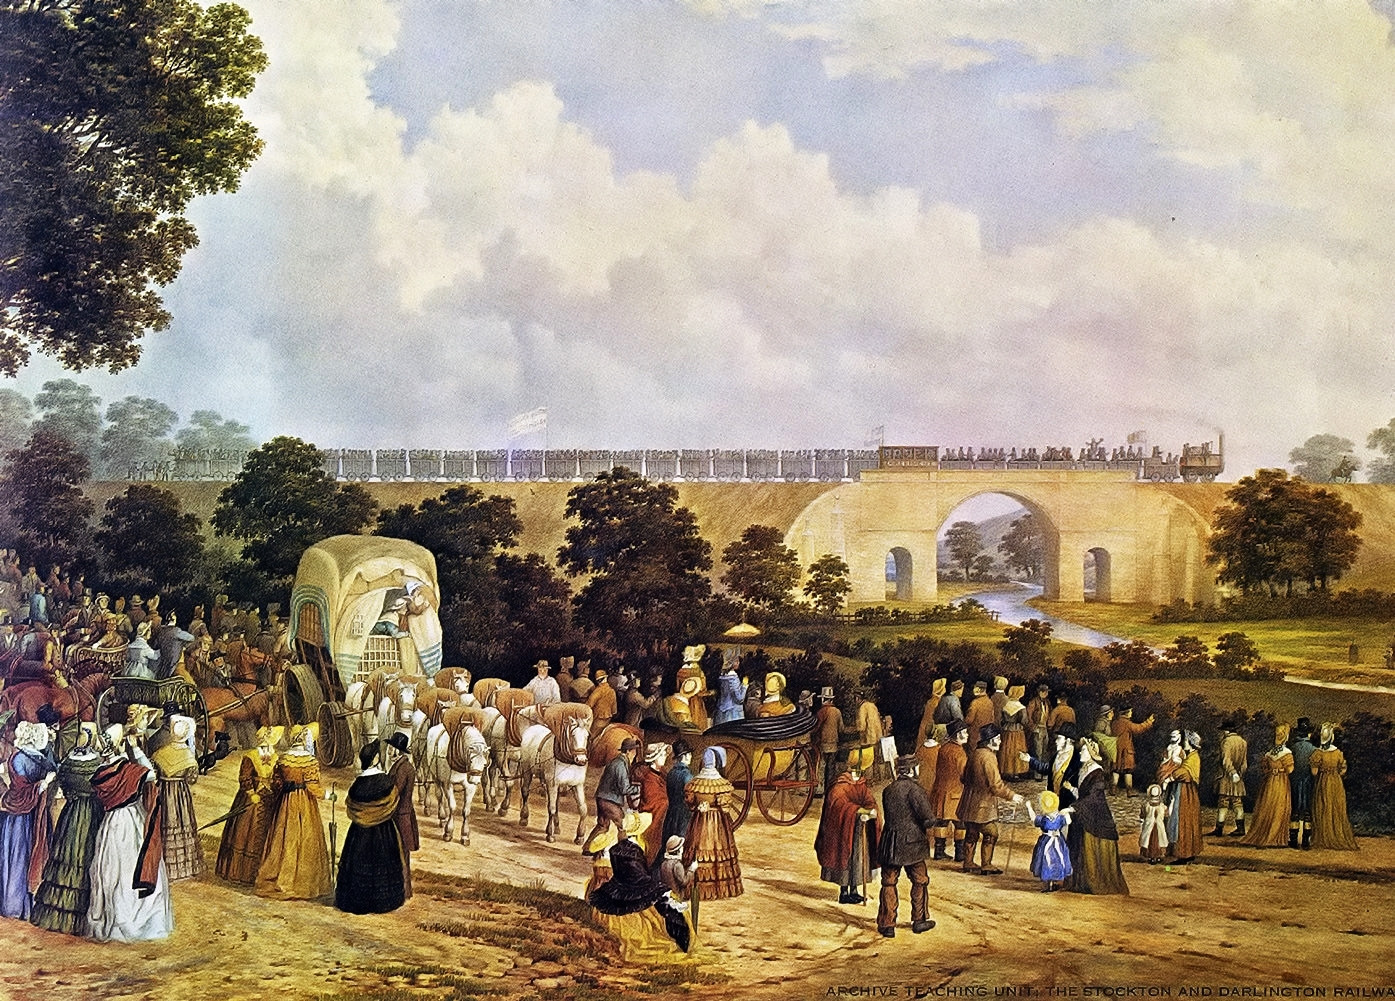 Opening of the Stockton and Darlington Railway in 1825 by John Dobbin